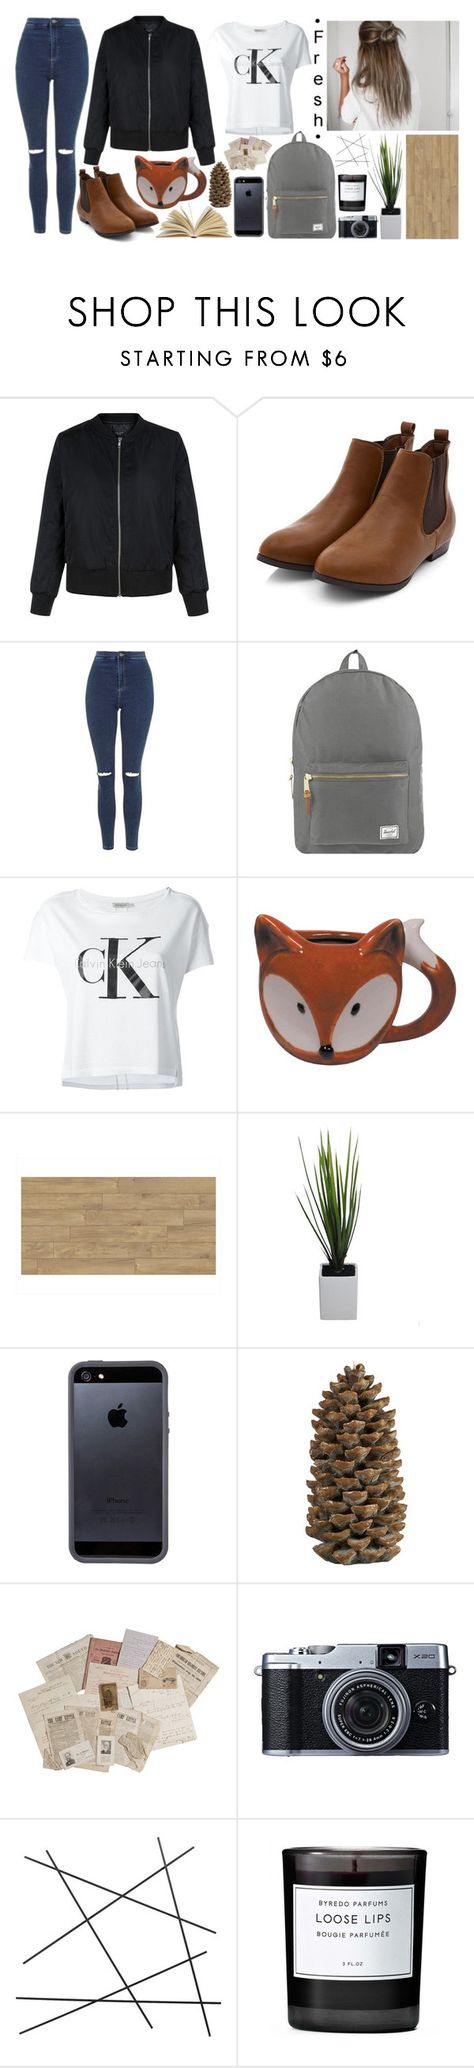 """""""No. 436"""" by emmdaisy ❤ liked on Polyvore featuring Topshop, Herschel Supply Co., Calvin Klein Jeans, Tavik Swimwear, Crate and Barrel, Fujifilm, CB2 and Byredo"""